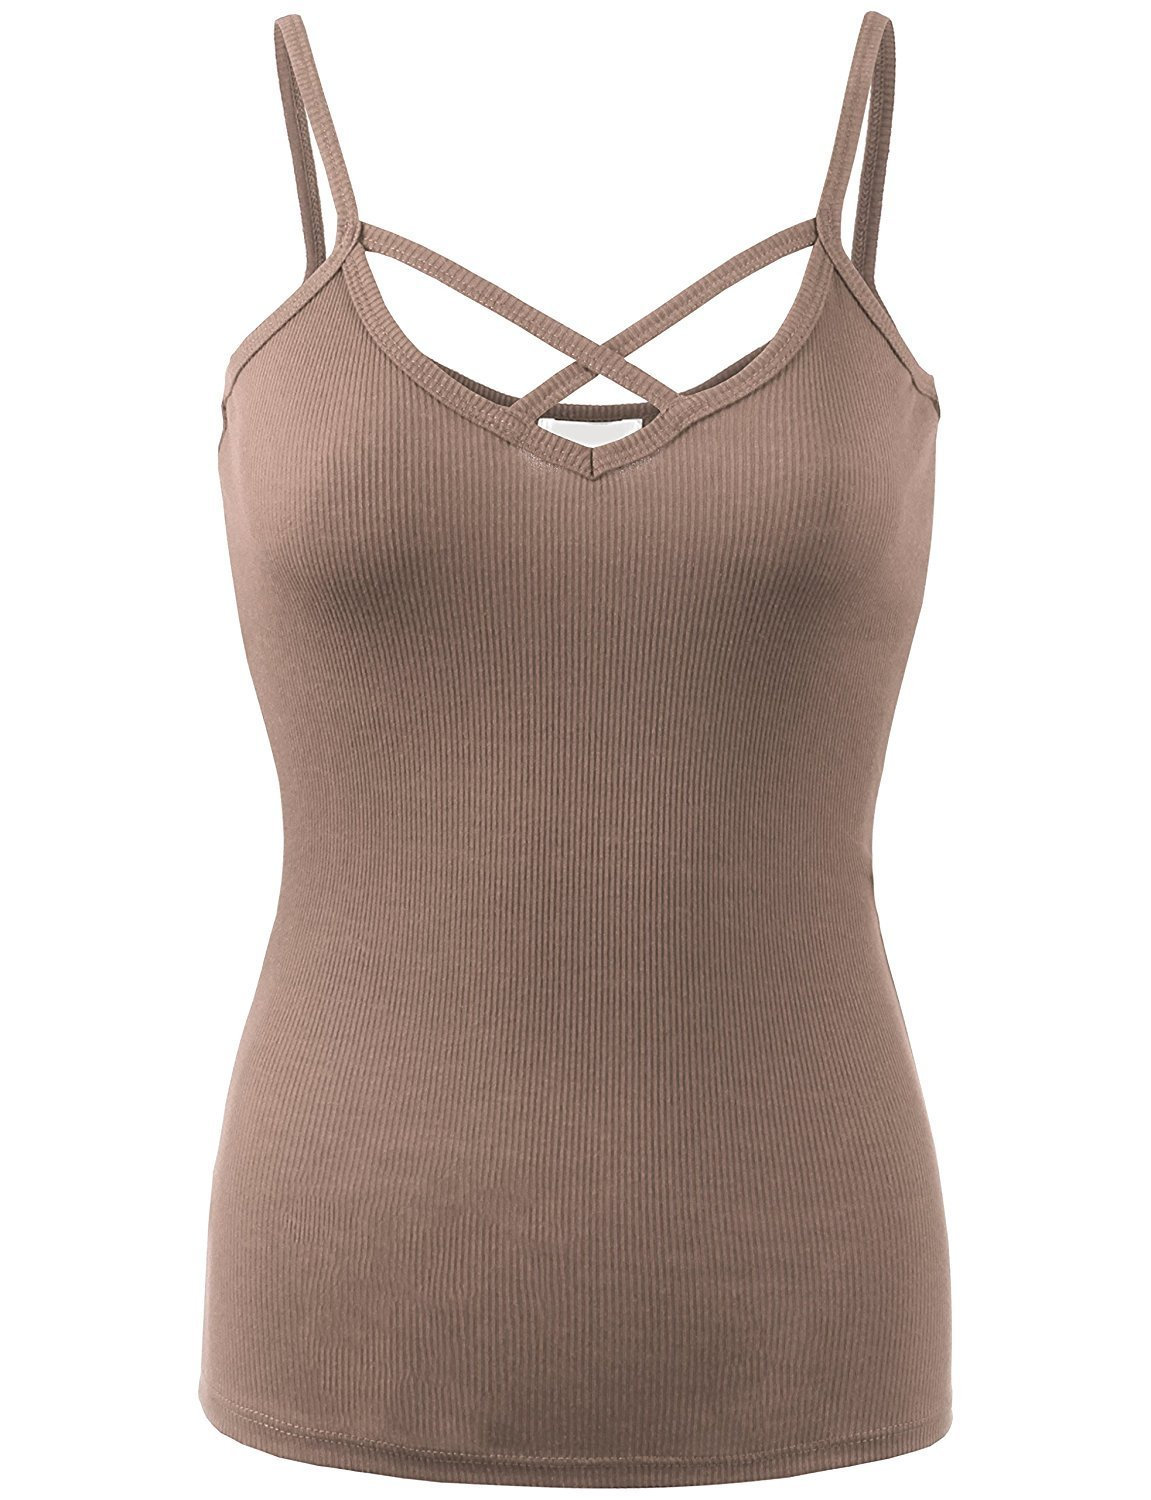 BABY-QQ Comfortable Womens Solid Ribbed Crisscross Cami Top-S-MOCHA Doubldowt469_mochaSmall